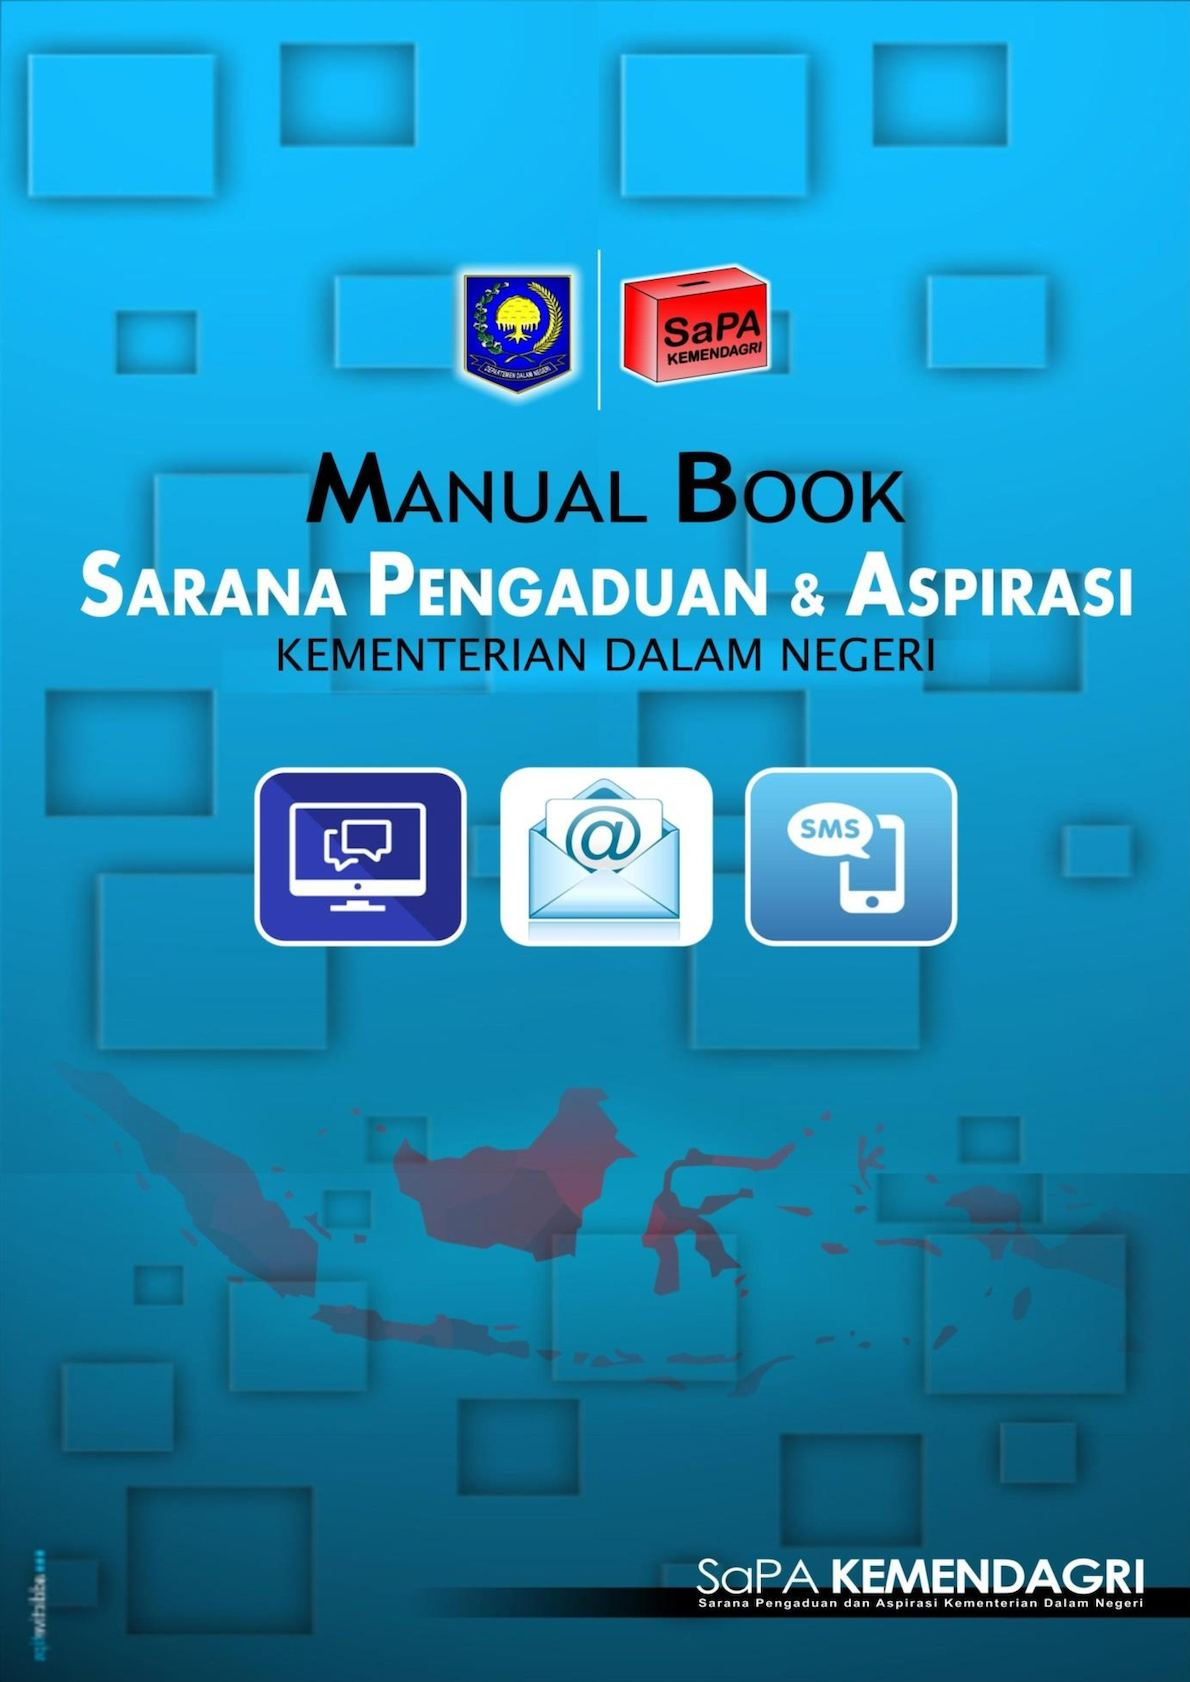 Manual Book Aplikasi SaPA Kemendagri